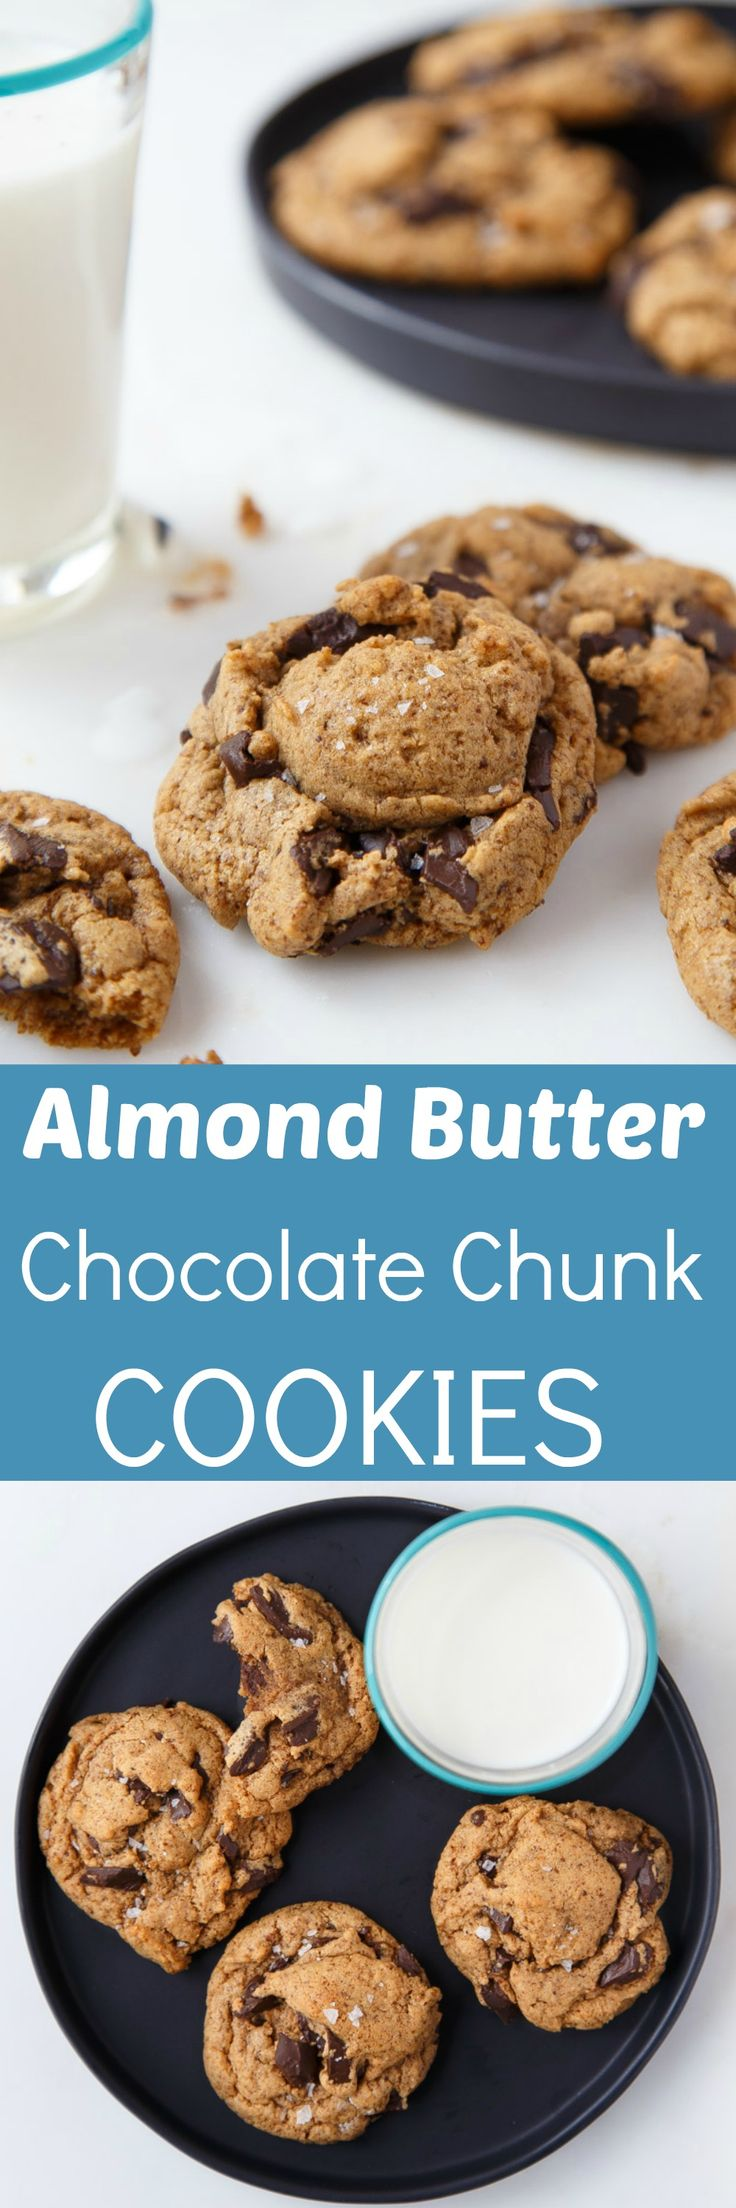 Almond Butter Chocolate Chunk Cookies (ABCs!) | Recipe | Butter ...